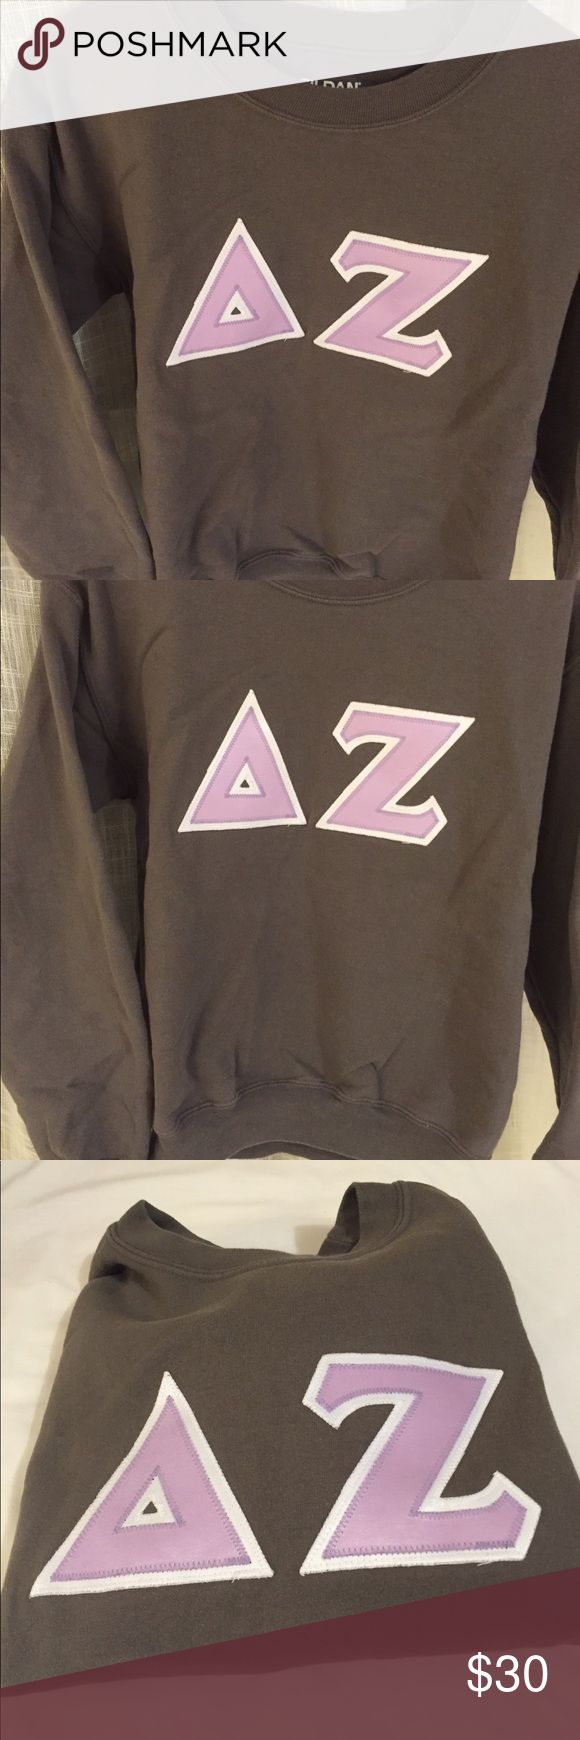 Grey Crewneck Delta Zeta Block Letter Sweatshirt DZ Block letter crewneck sweatshirt. Gildan size Small. Grey with light purple letters and white border Tops Tees - Short Sleeve